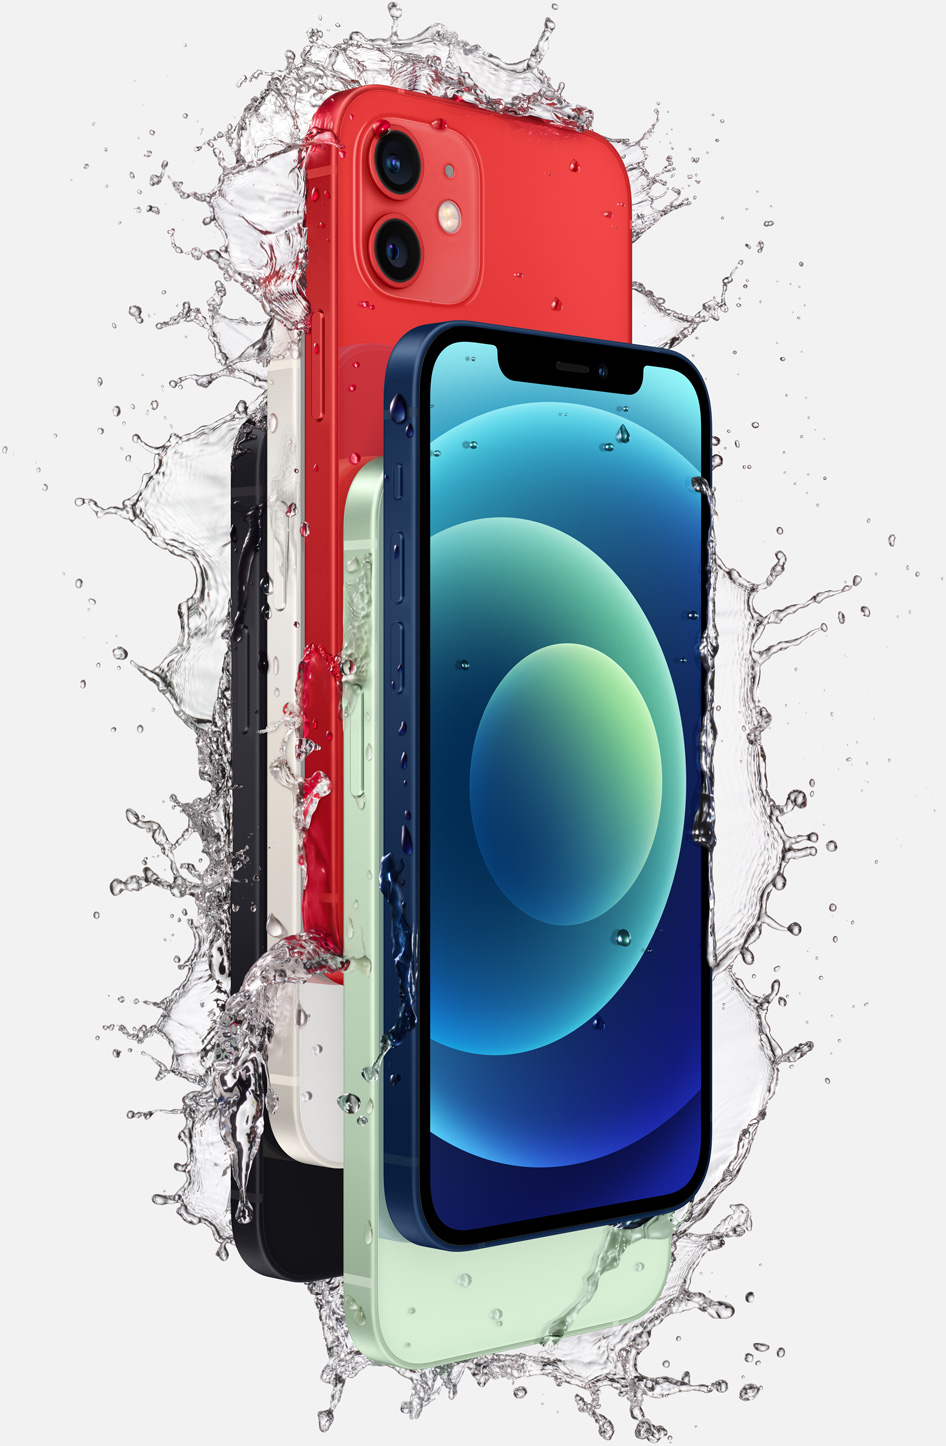 iPhone12和iPhone11主要区别(18项) - design h2ok large